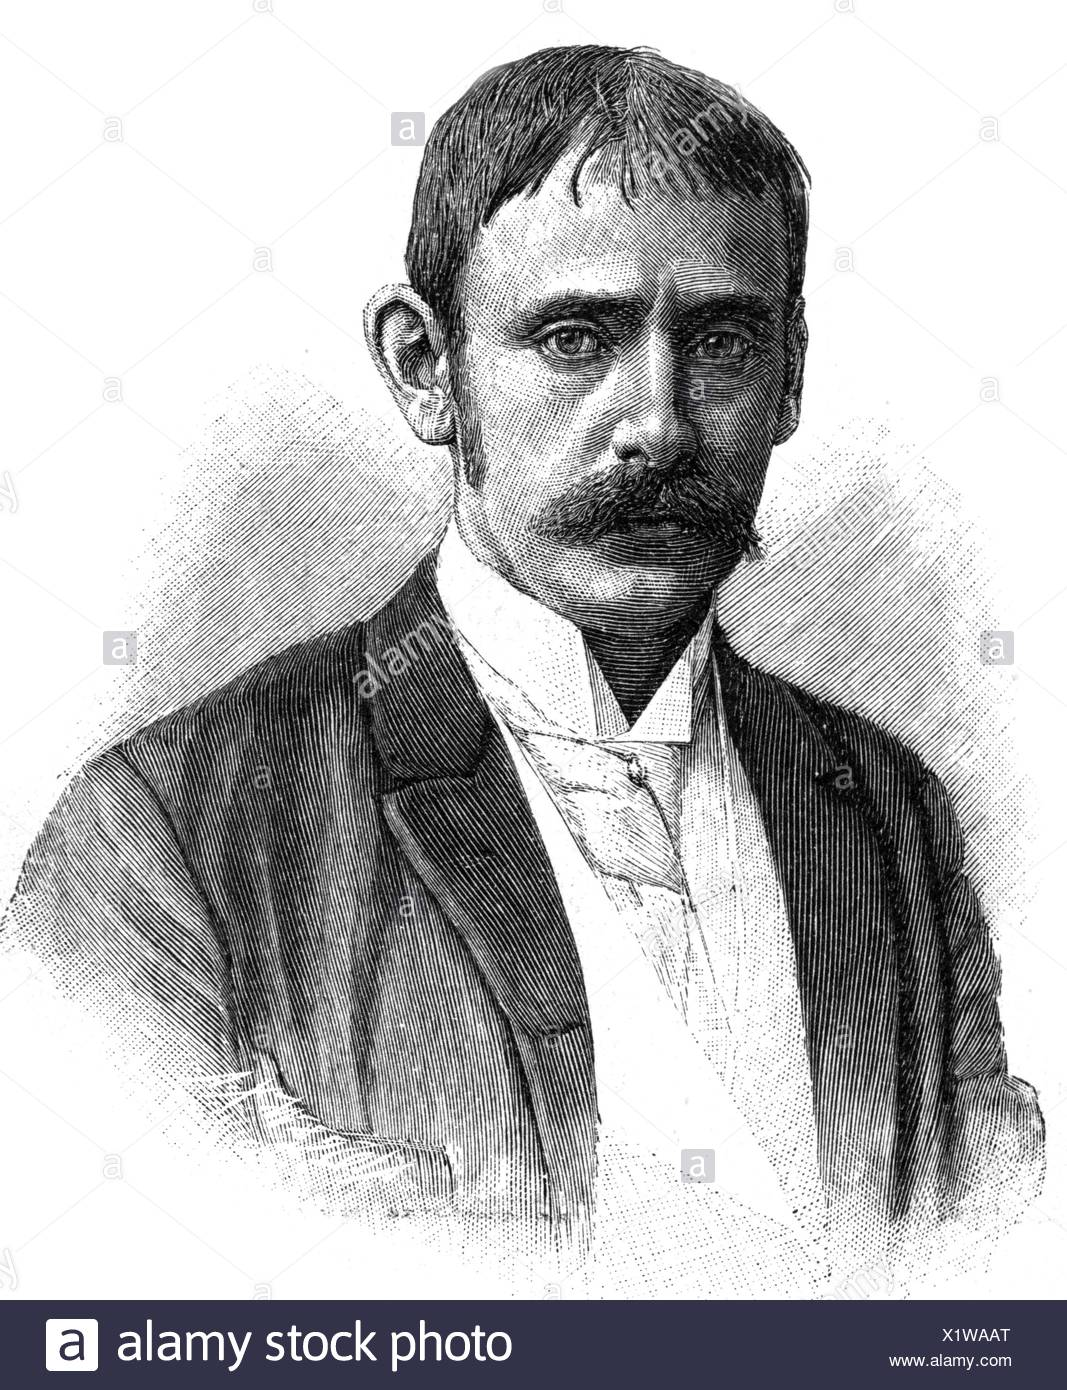 Peters, Carl, 27.9.1856 - 10.9.1918, German Africanist and colonial politician, president of the German East African company 1885 - 1888, portrait, late 19th century, Additional-Rights-Clearances-NA - Stock Image